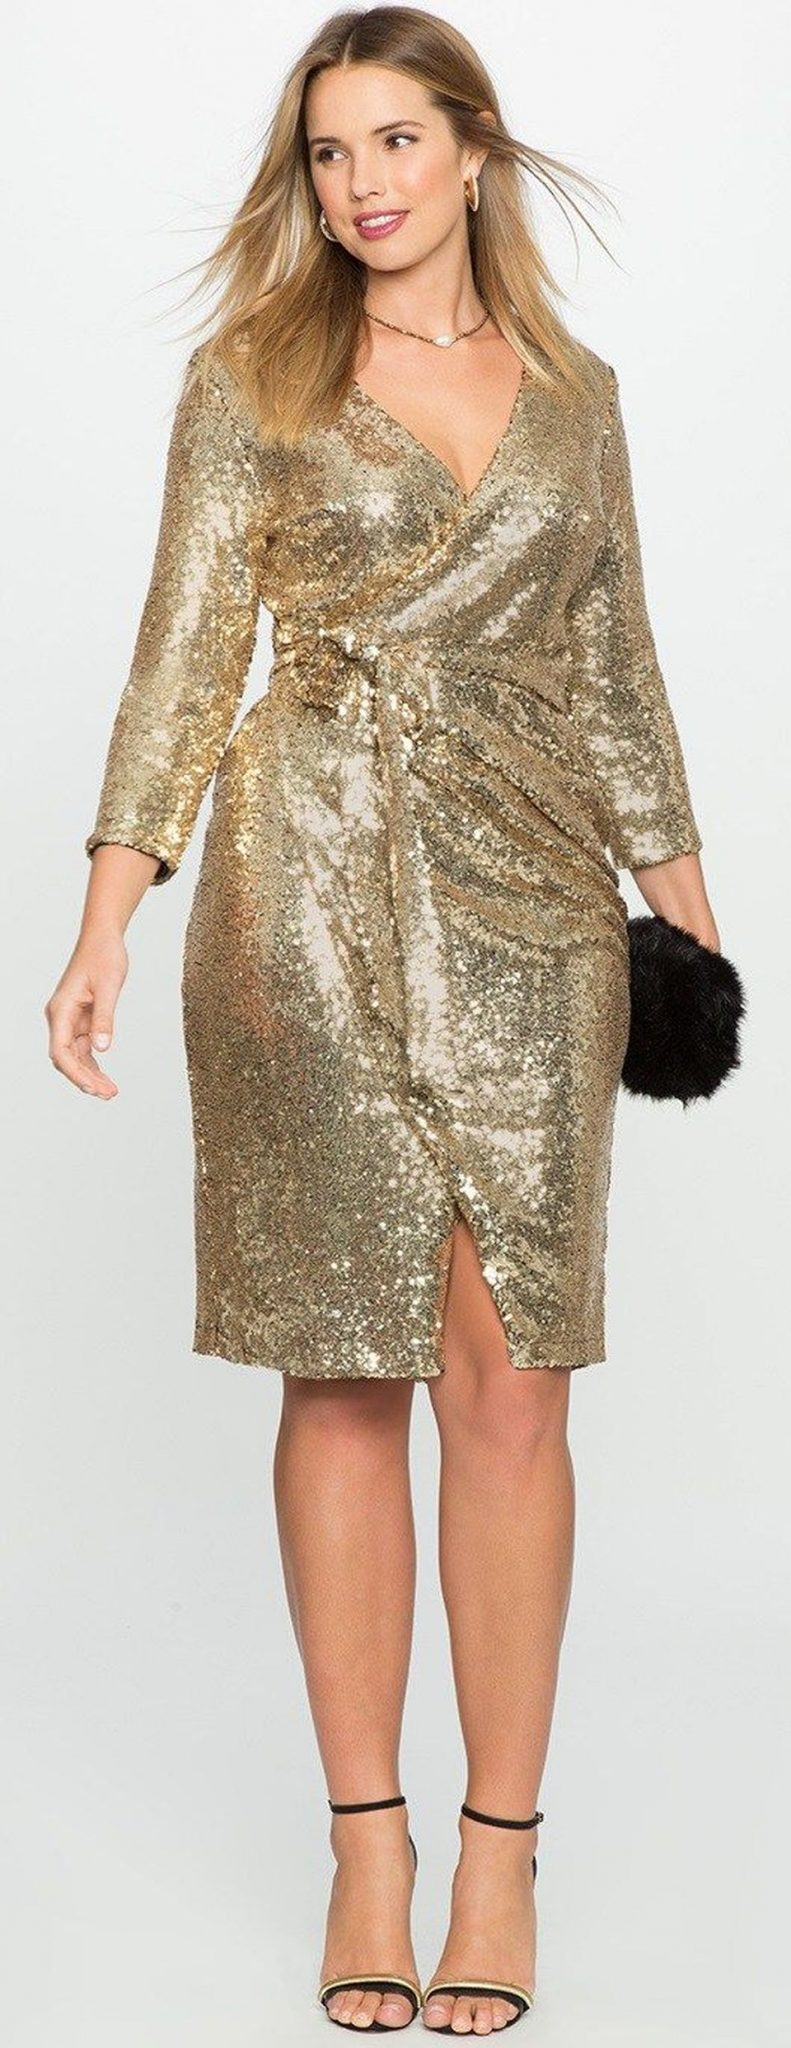 Sequin dress for new year eve party and night out 9